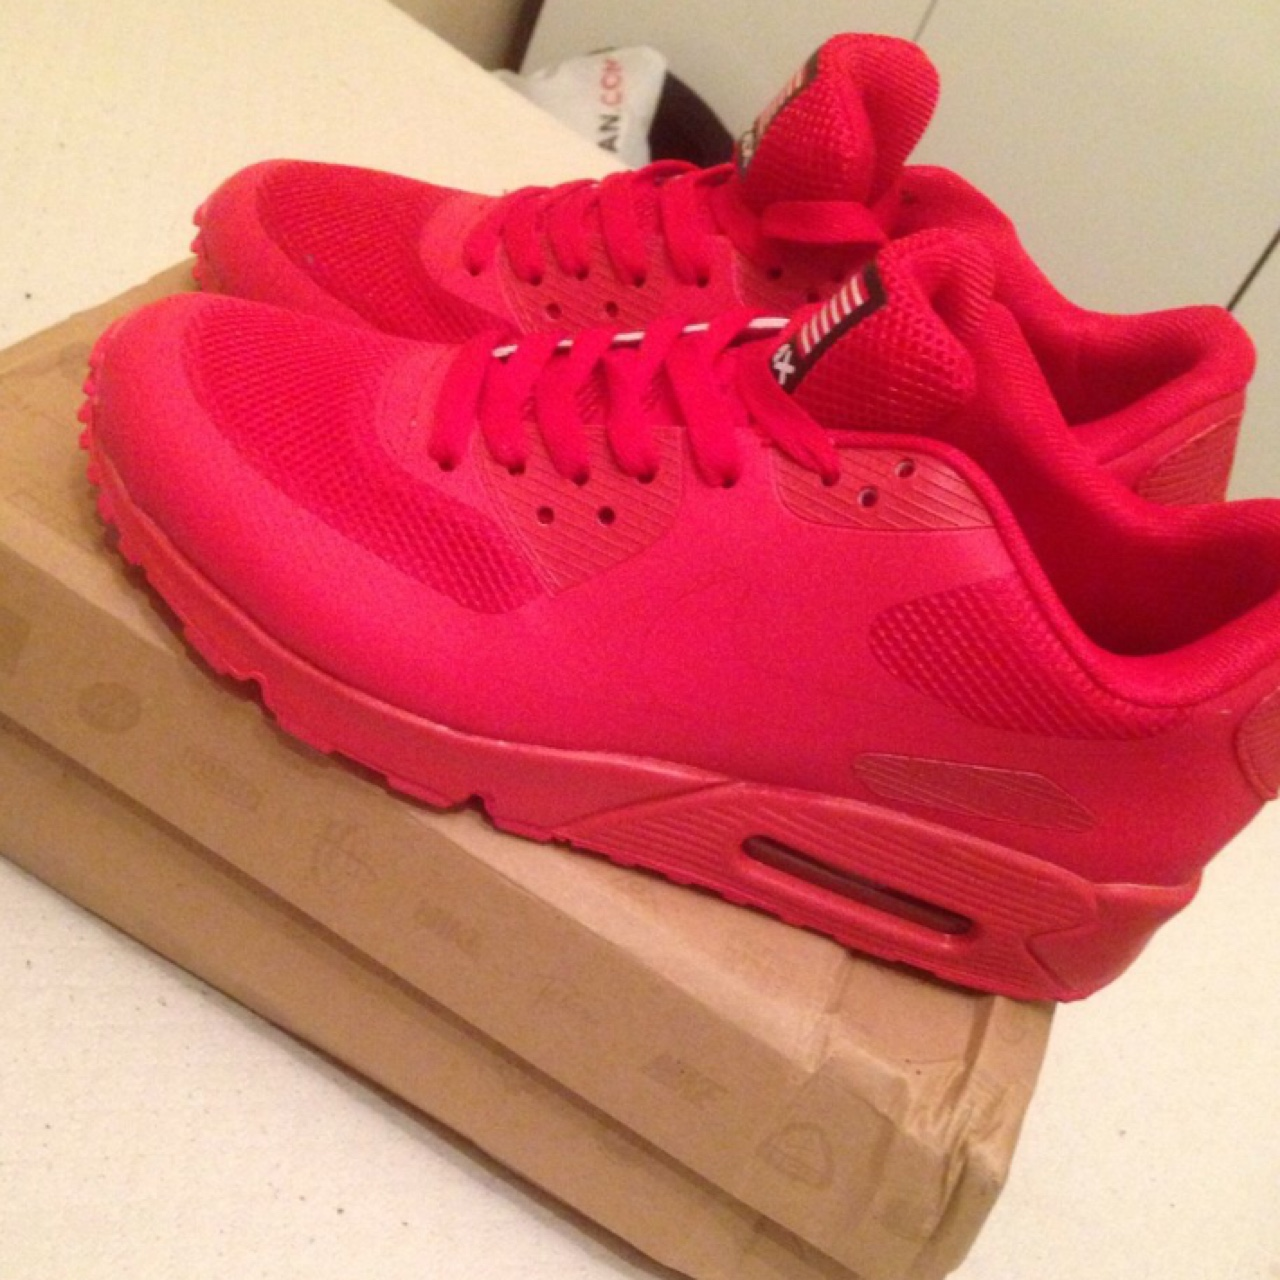 Nike Air Max, solar red hyperfuse, Independence Day. Depop